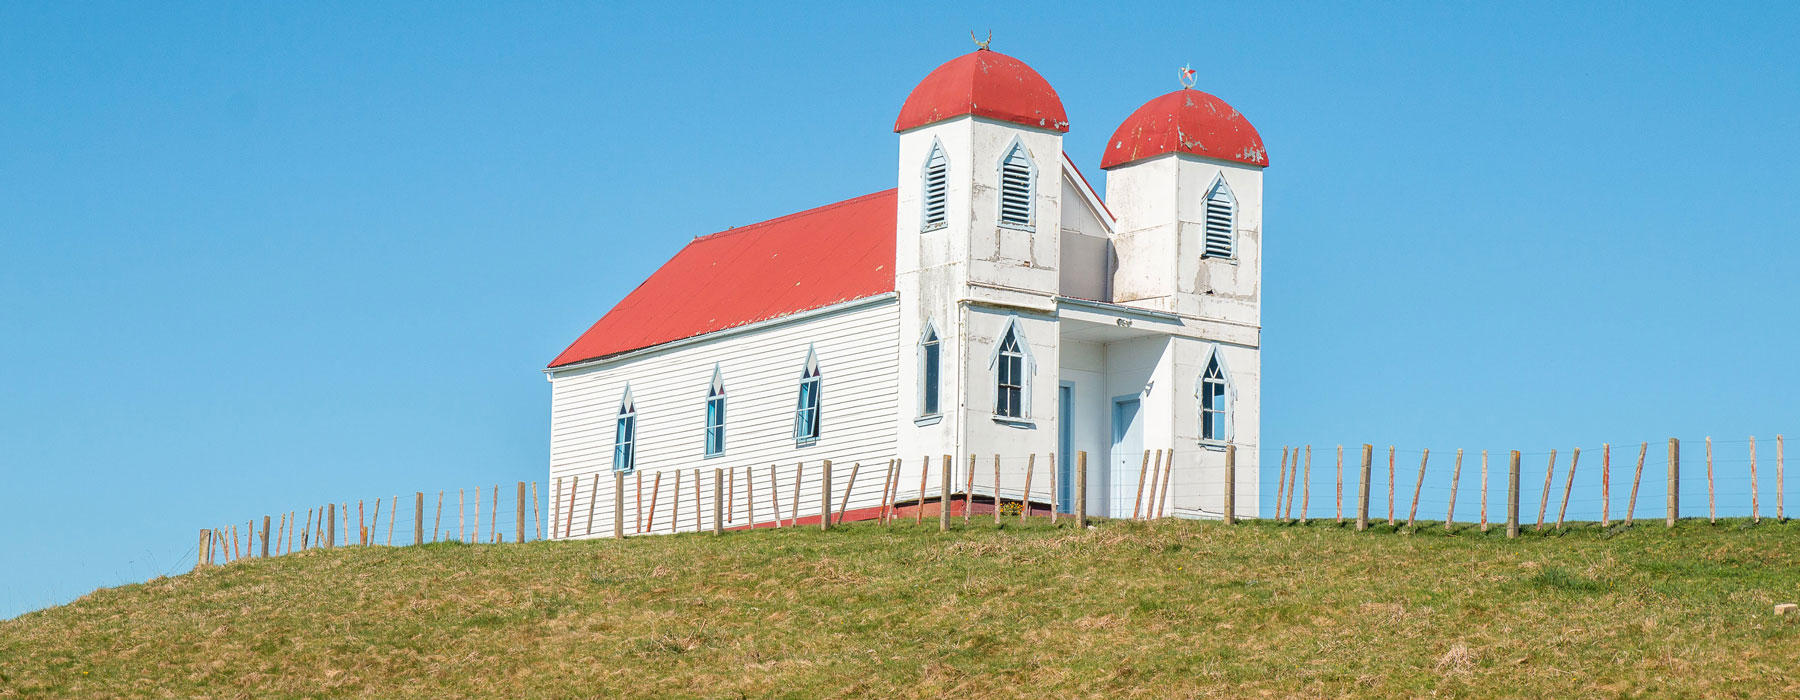 White church building with red roof